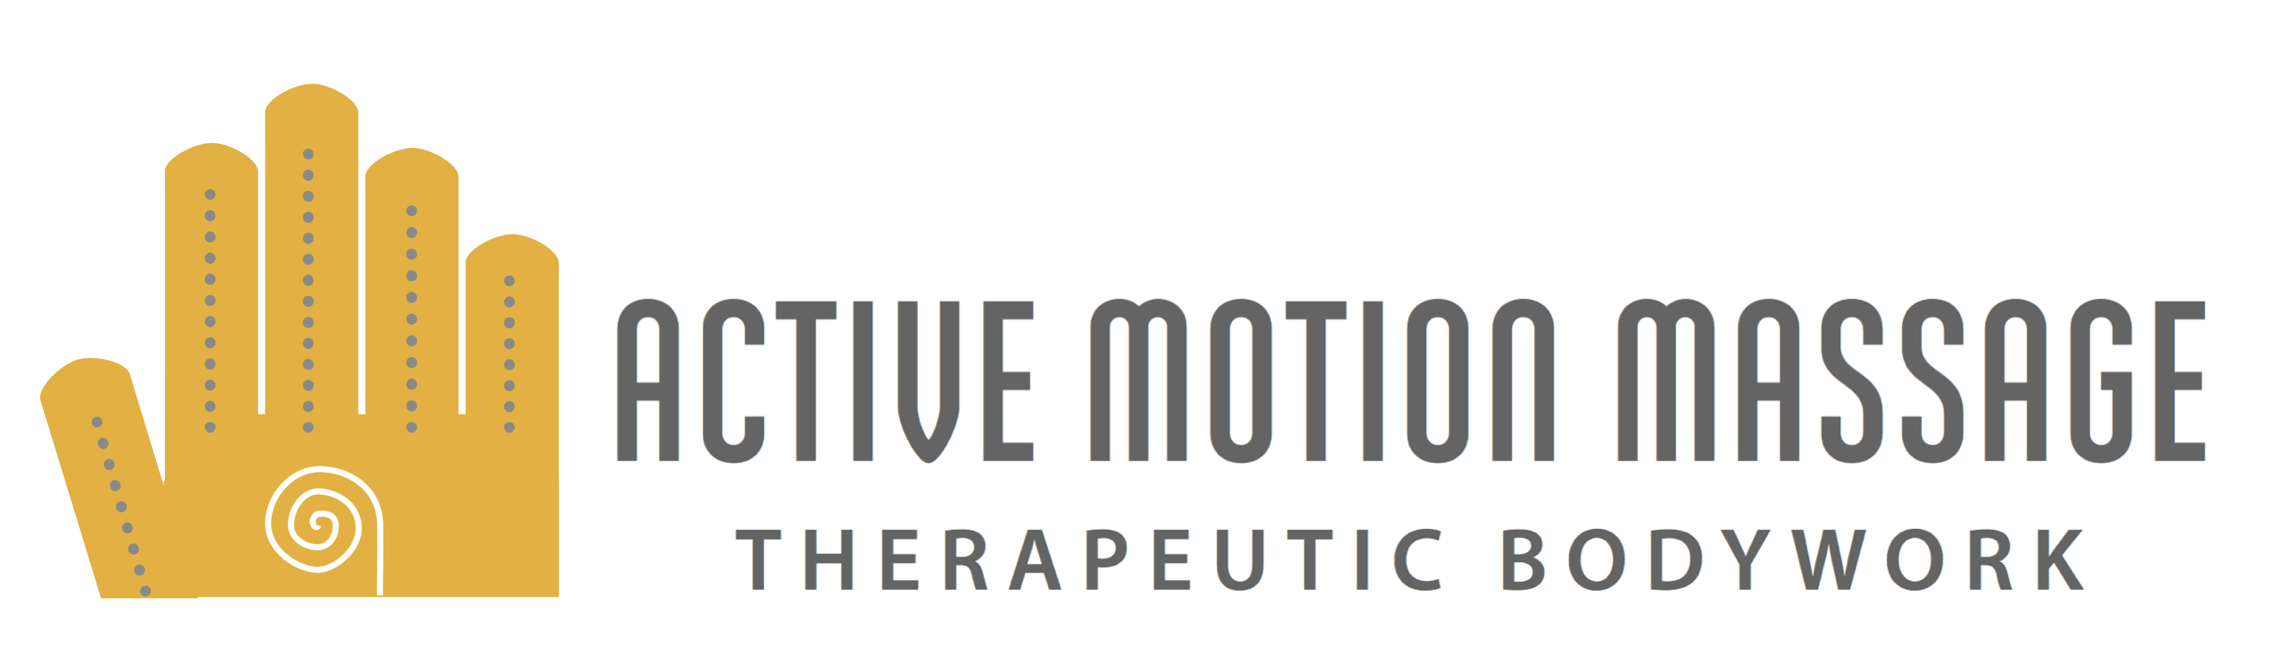 Active Motion Massage